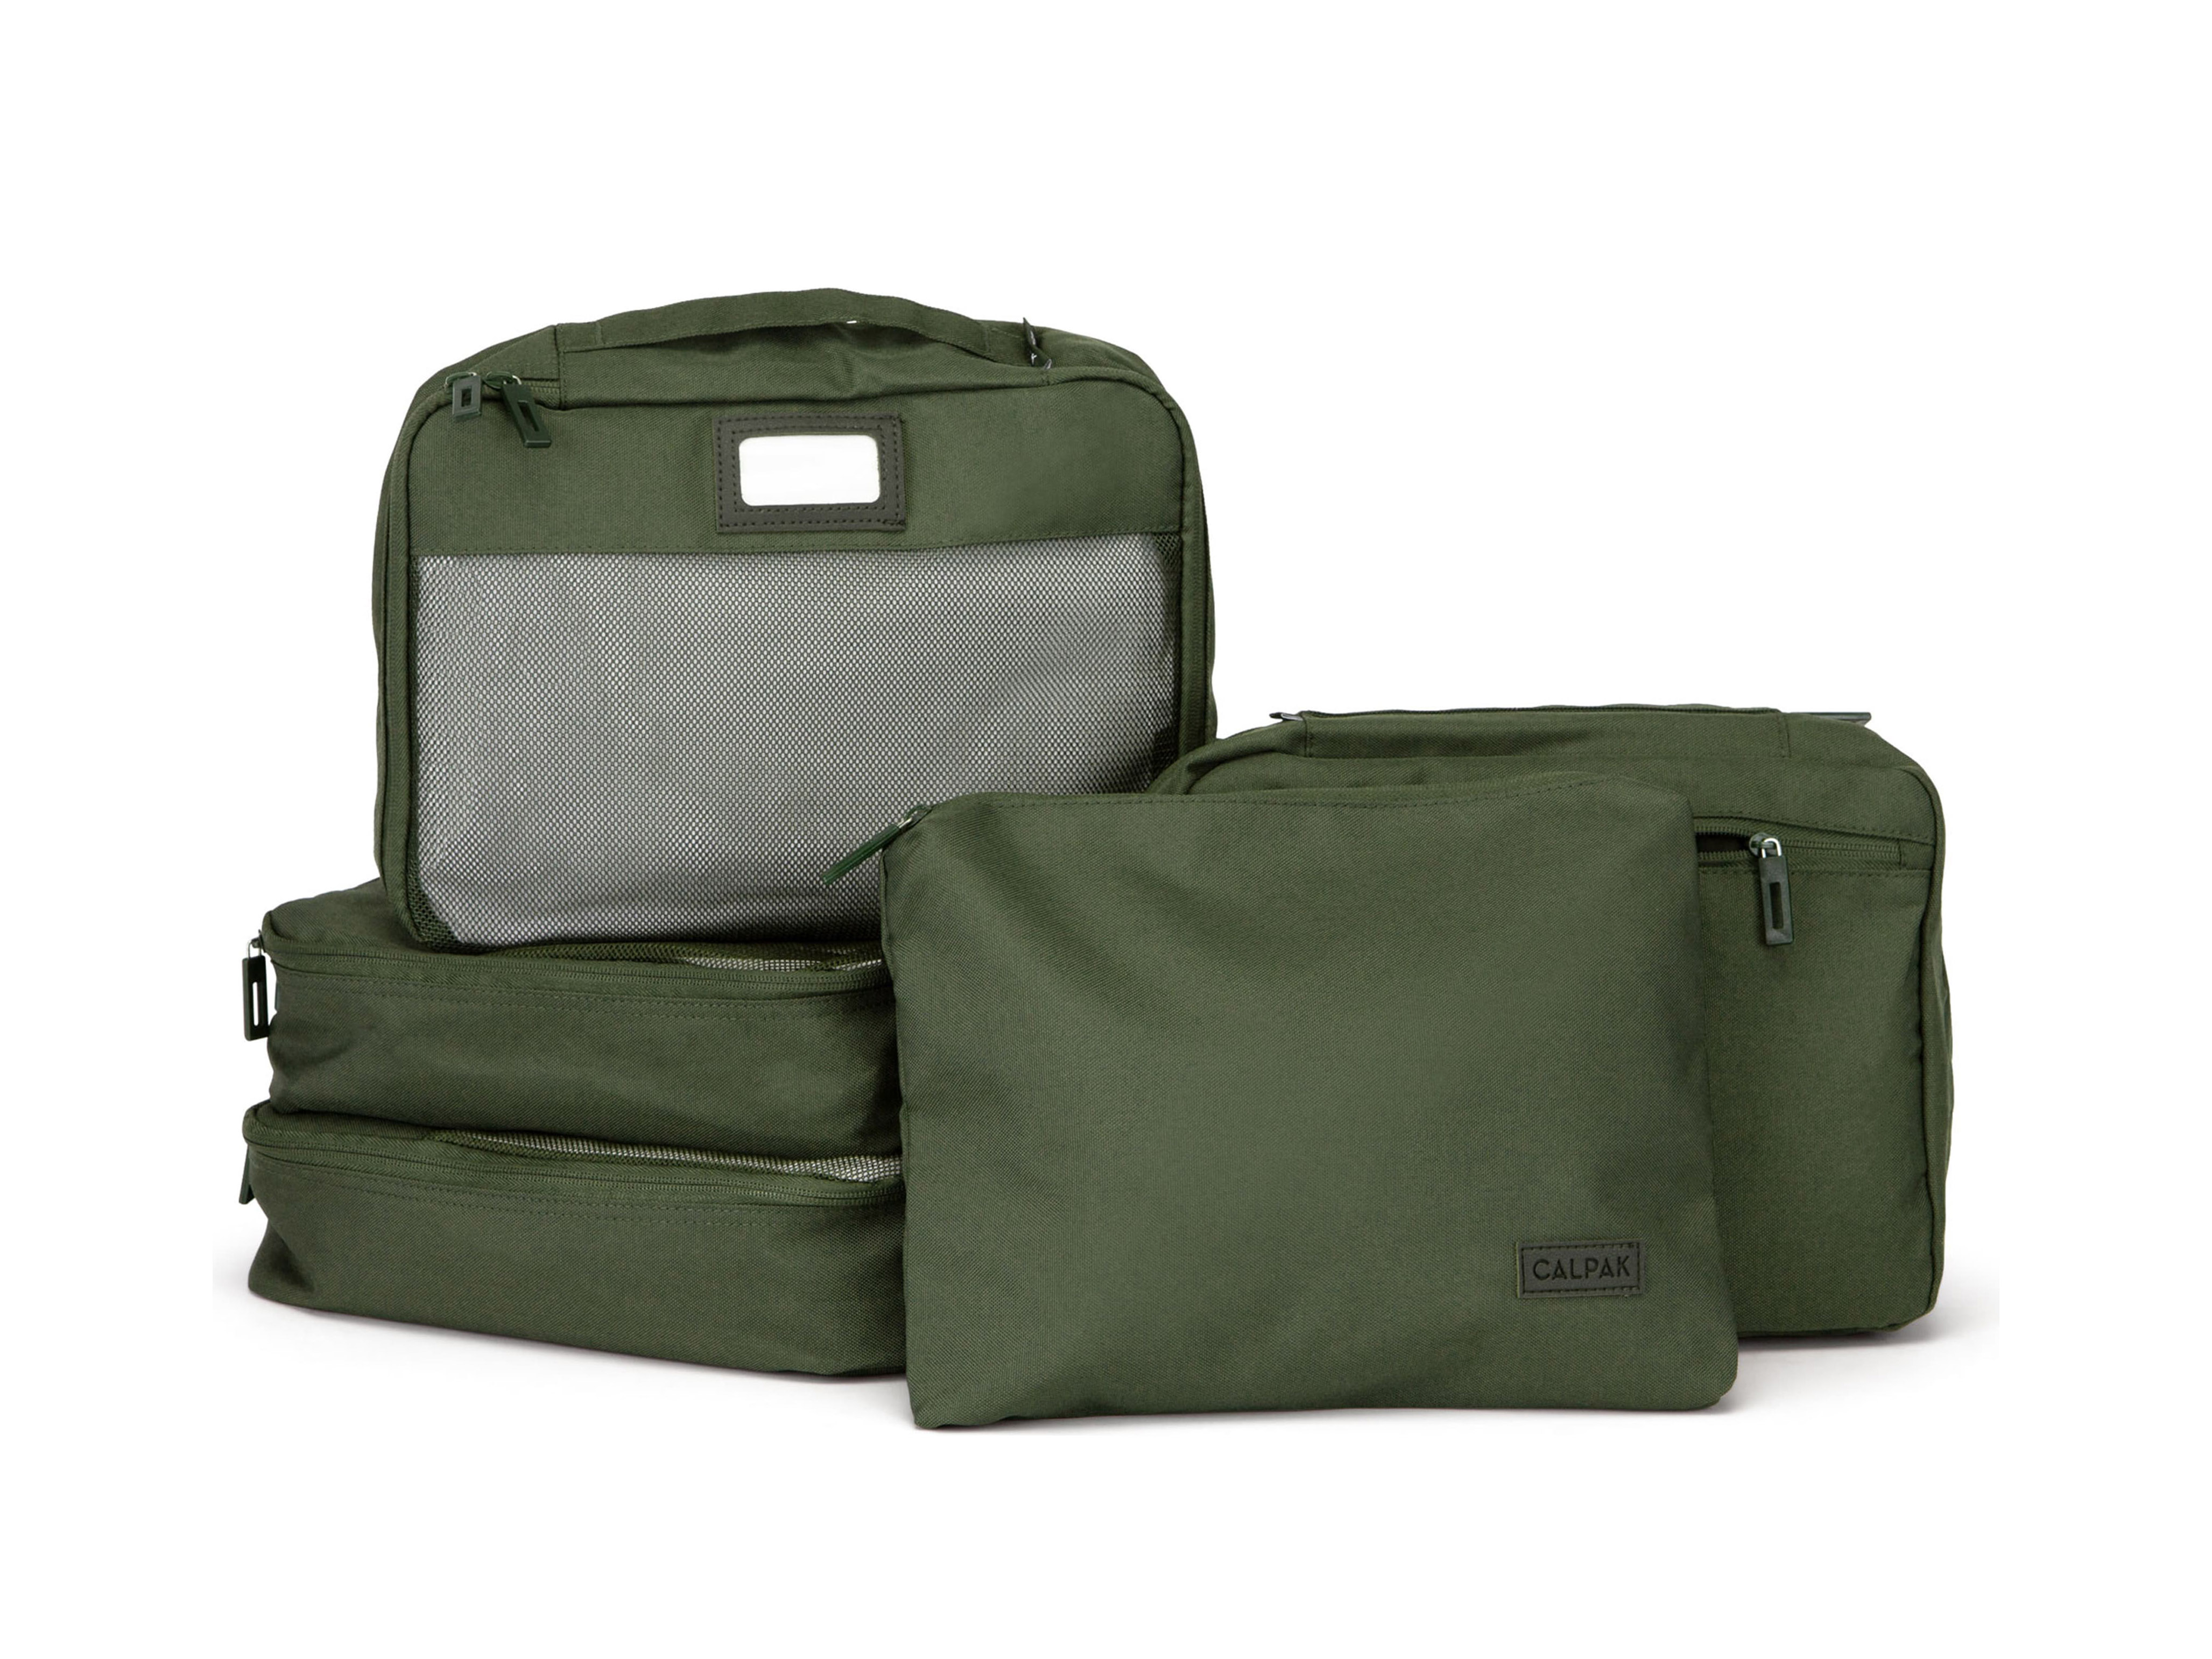 Best Covid-19 Travel Accessories - Calpak Packing Cubes